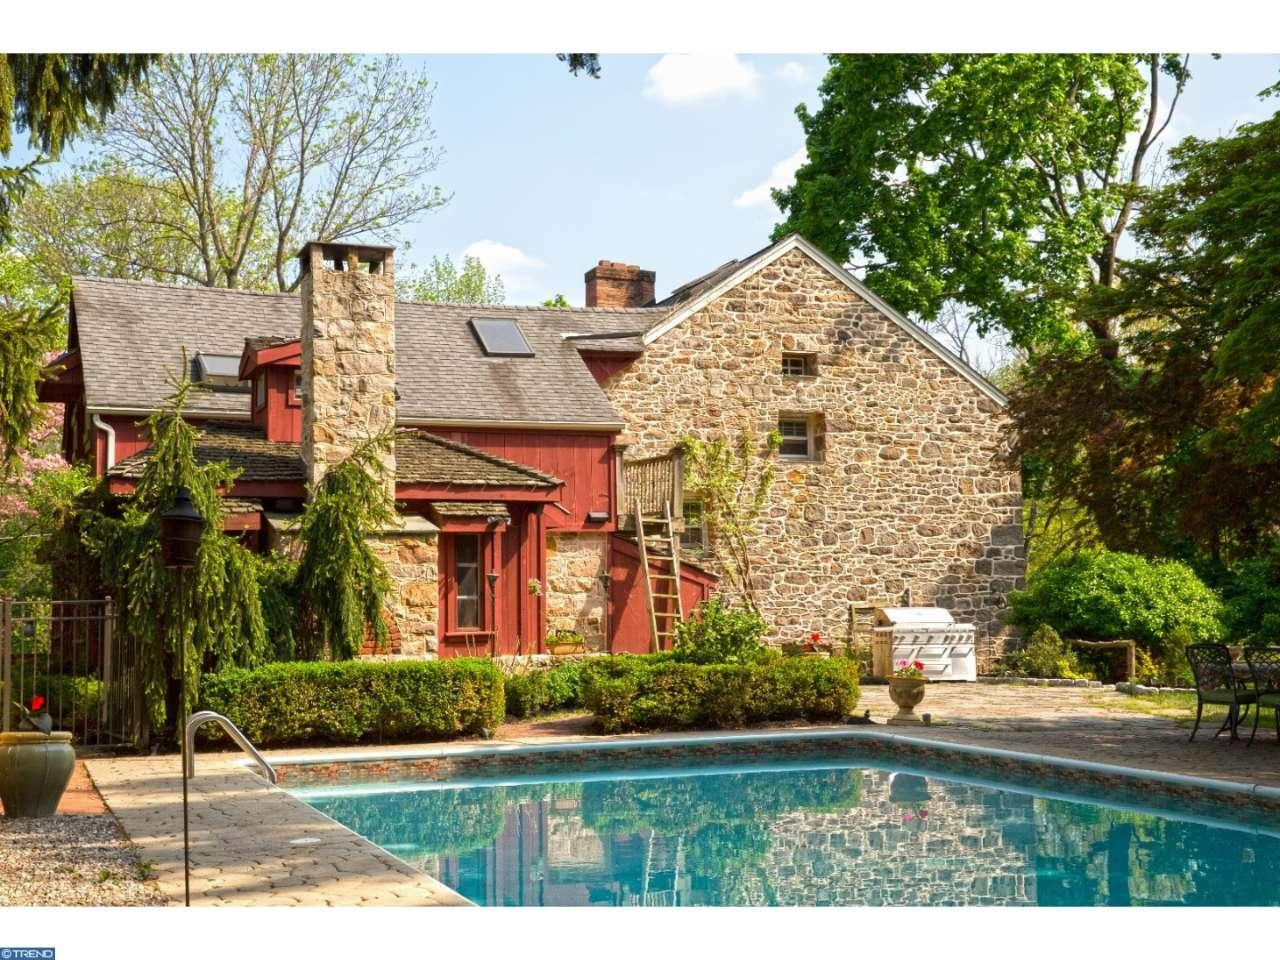 The Leap Year Barn a Storybook home for sale in Doylestown PA is a must see old world style built in 1752